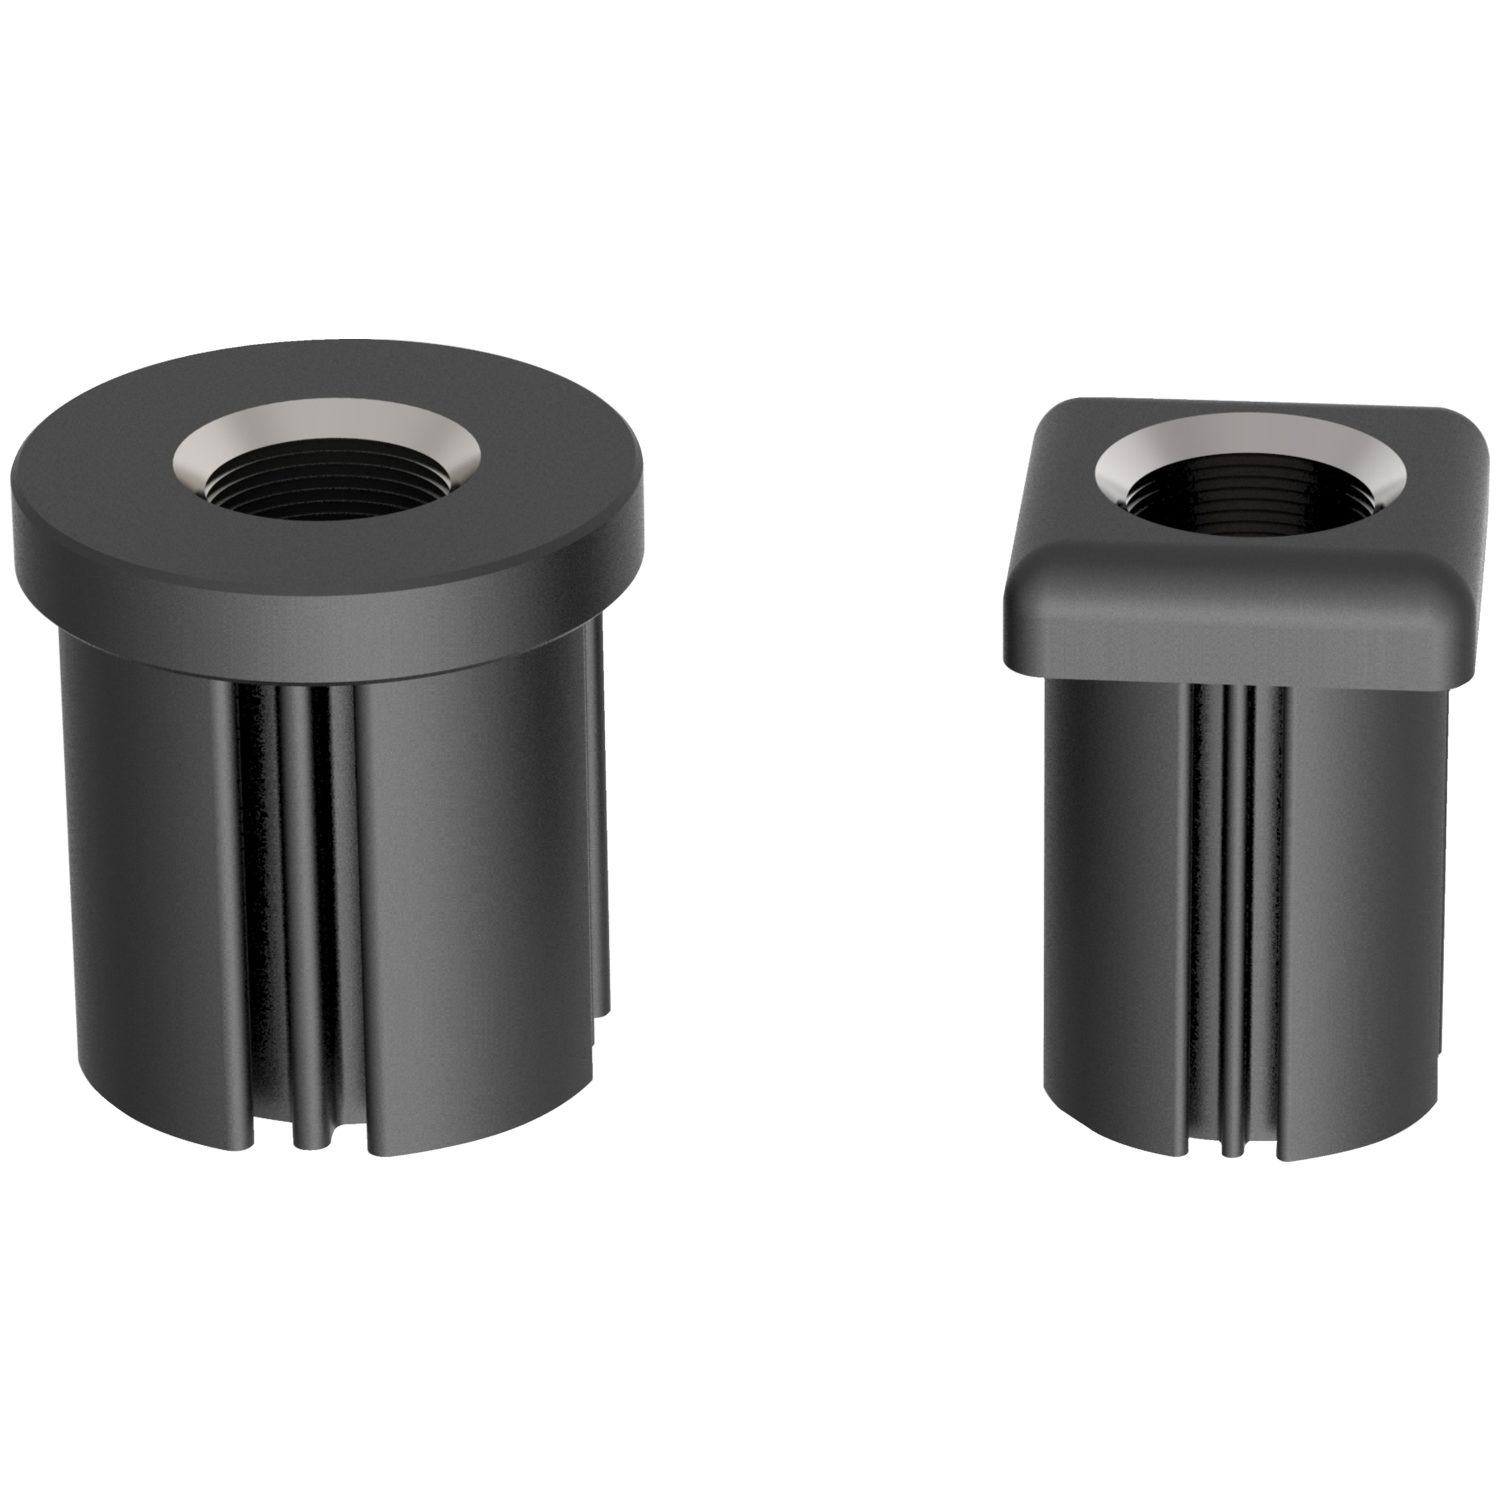 P2212 - Threaded Plastic Inserts